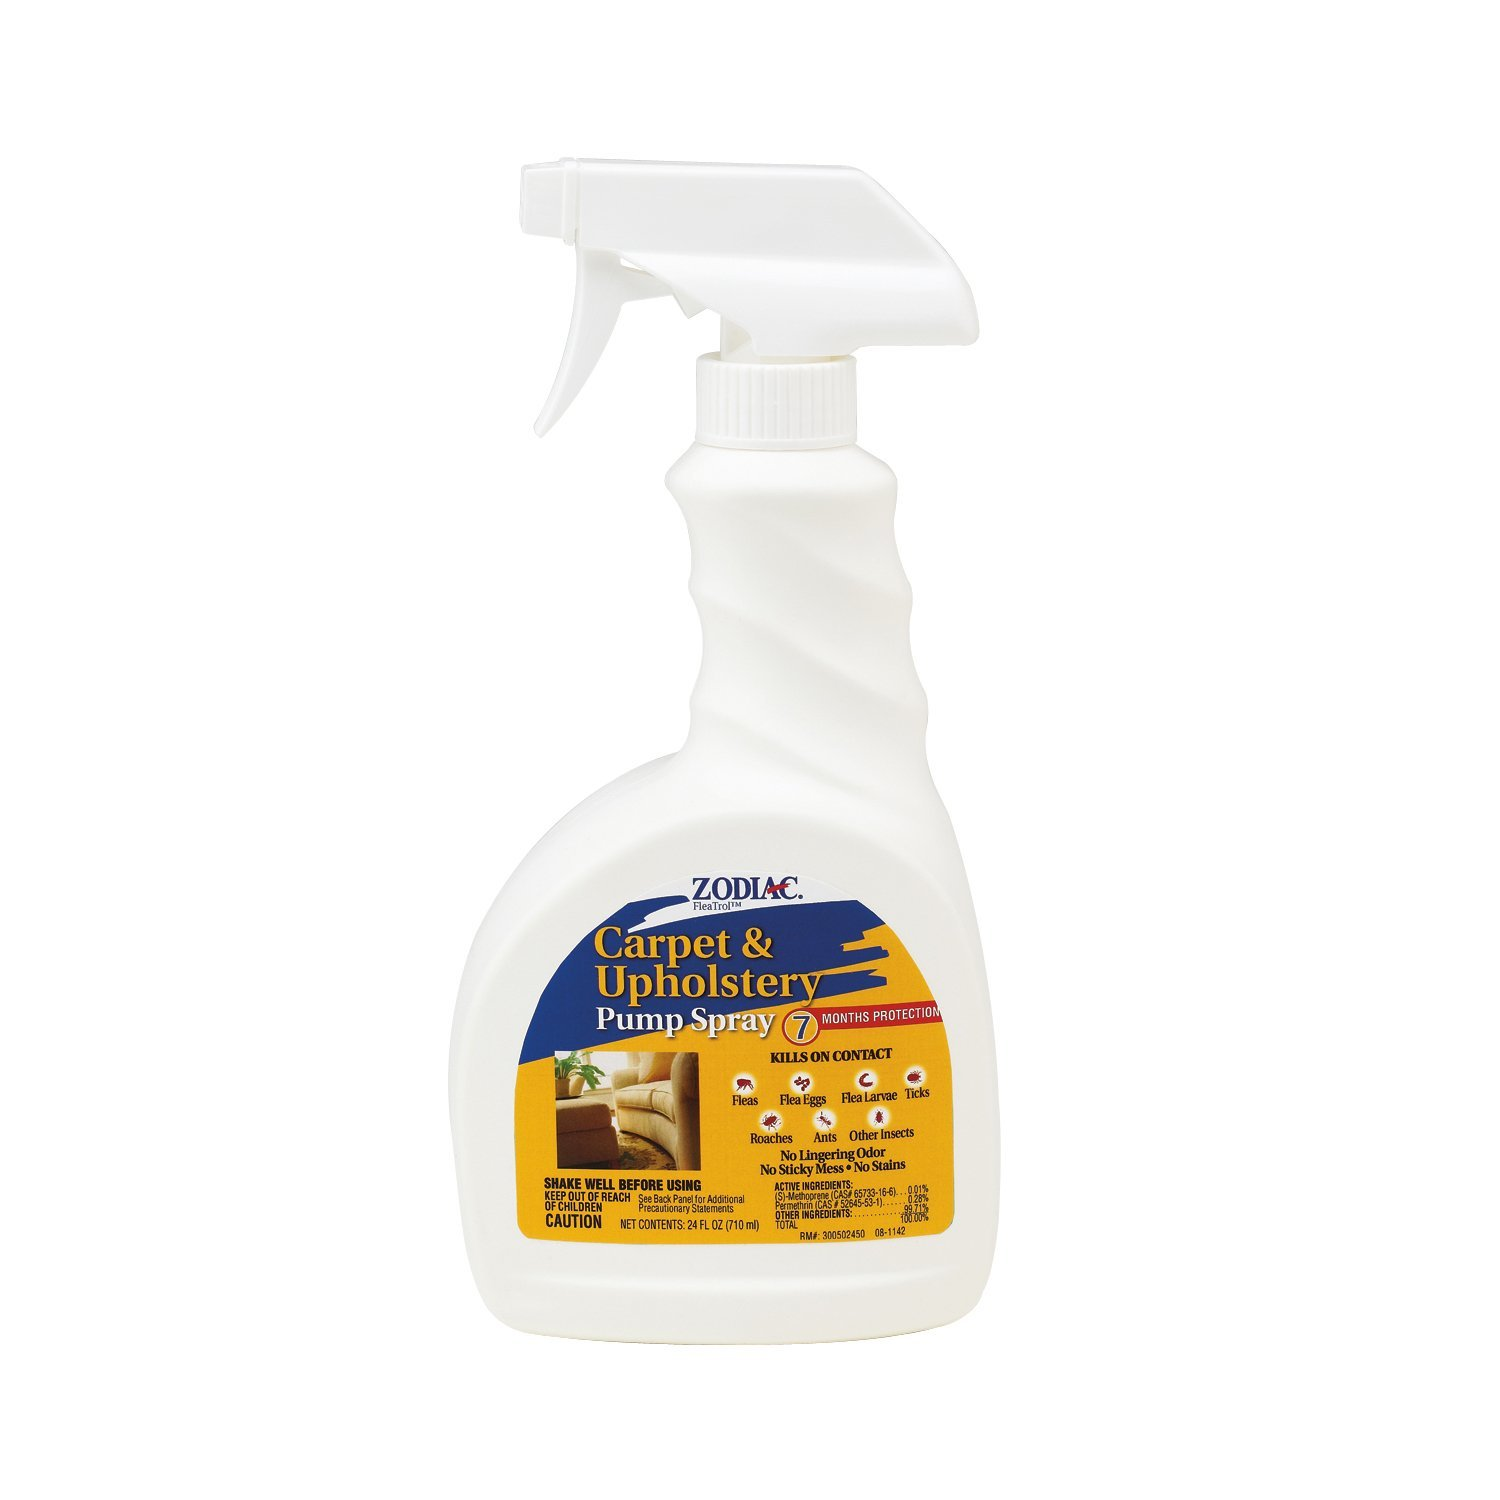 Zodiac Carpet & Upholstery Pump Spray